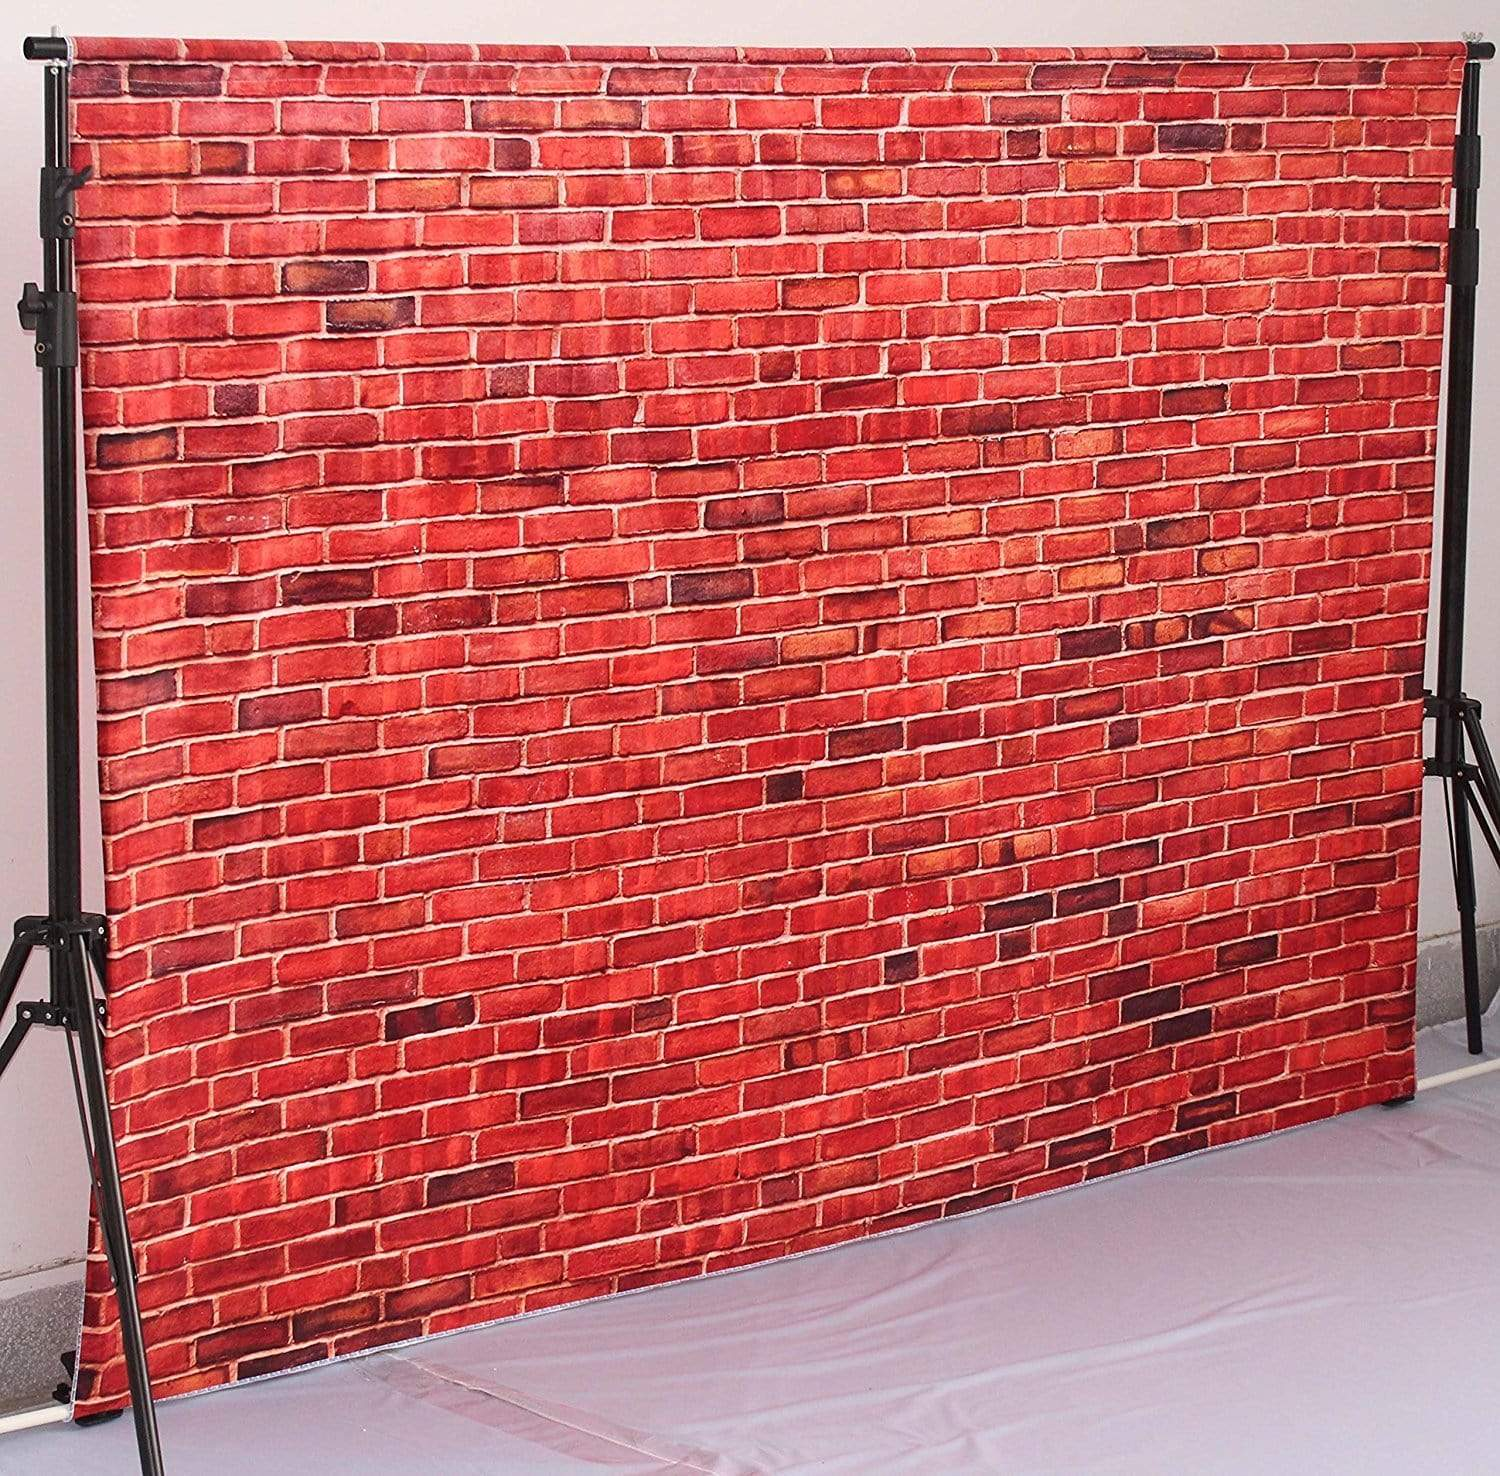 Load image into Gallery viewer, Katebackdrop:Kate Red Brick Wall Photography Backdrop Vintage Decoration Photo Background